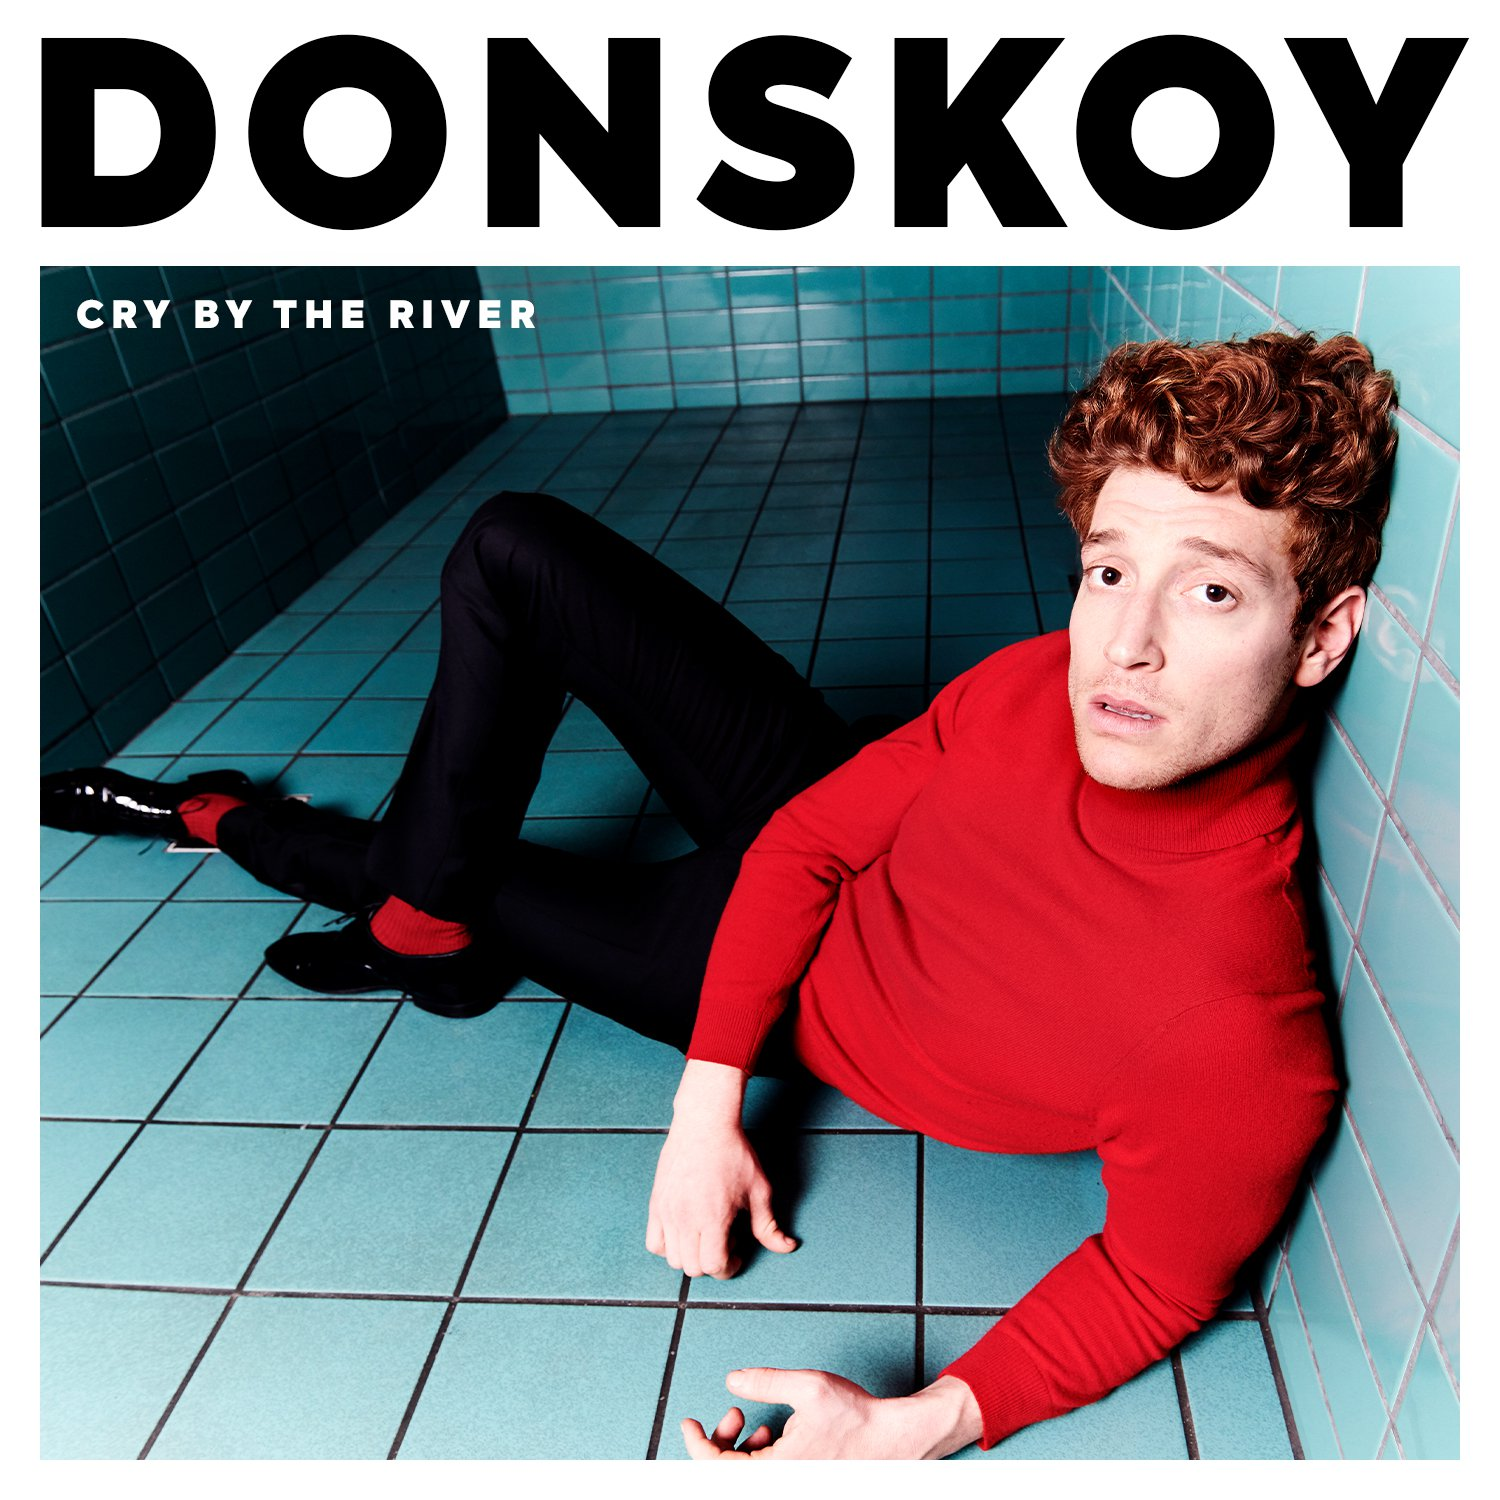 down by the rive - by - donskoy - indie music - indie pop - new music - Germany - UK - music blog - indie blog - wolf in a suit - wolfinasuit - wolf in a suit blog - wolf in a suit music blog